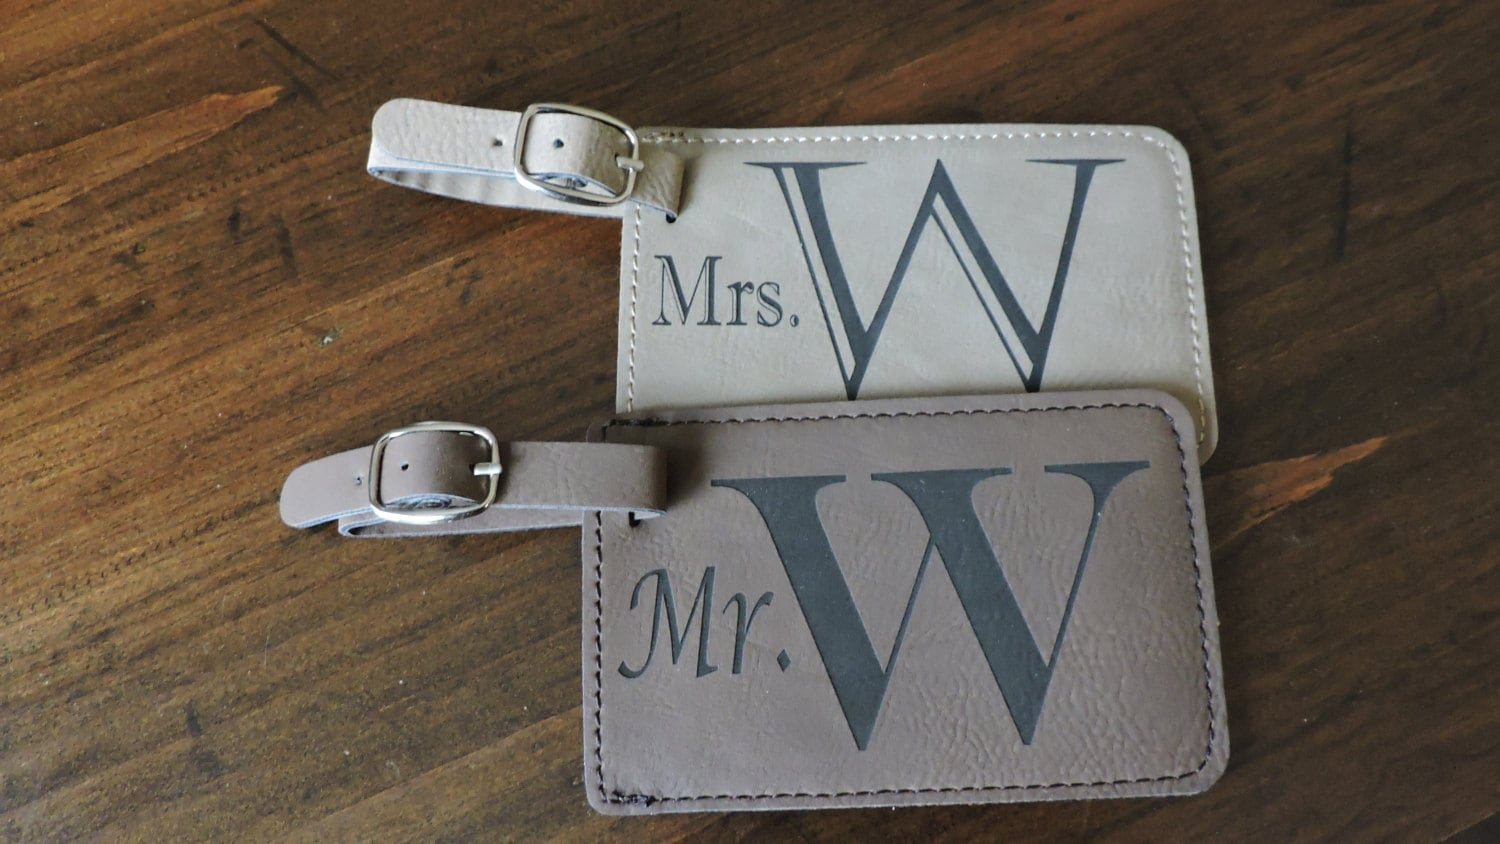 Mr And Mrs Gifts Wedding: Mr & Mrs Luggage Tags Mr And Mrs Gift For Wedding Or